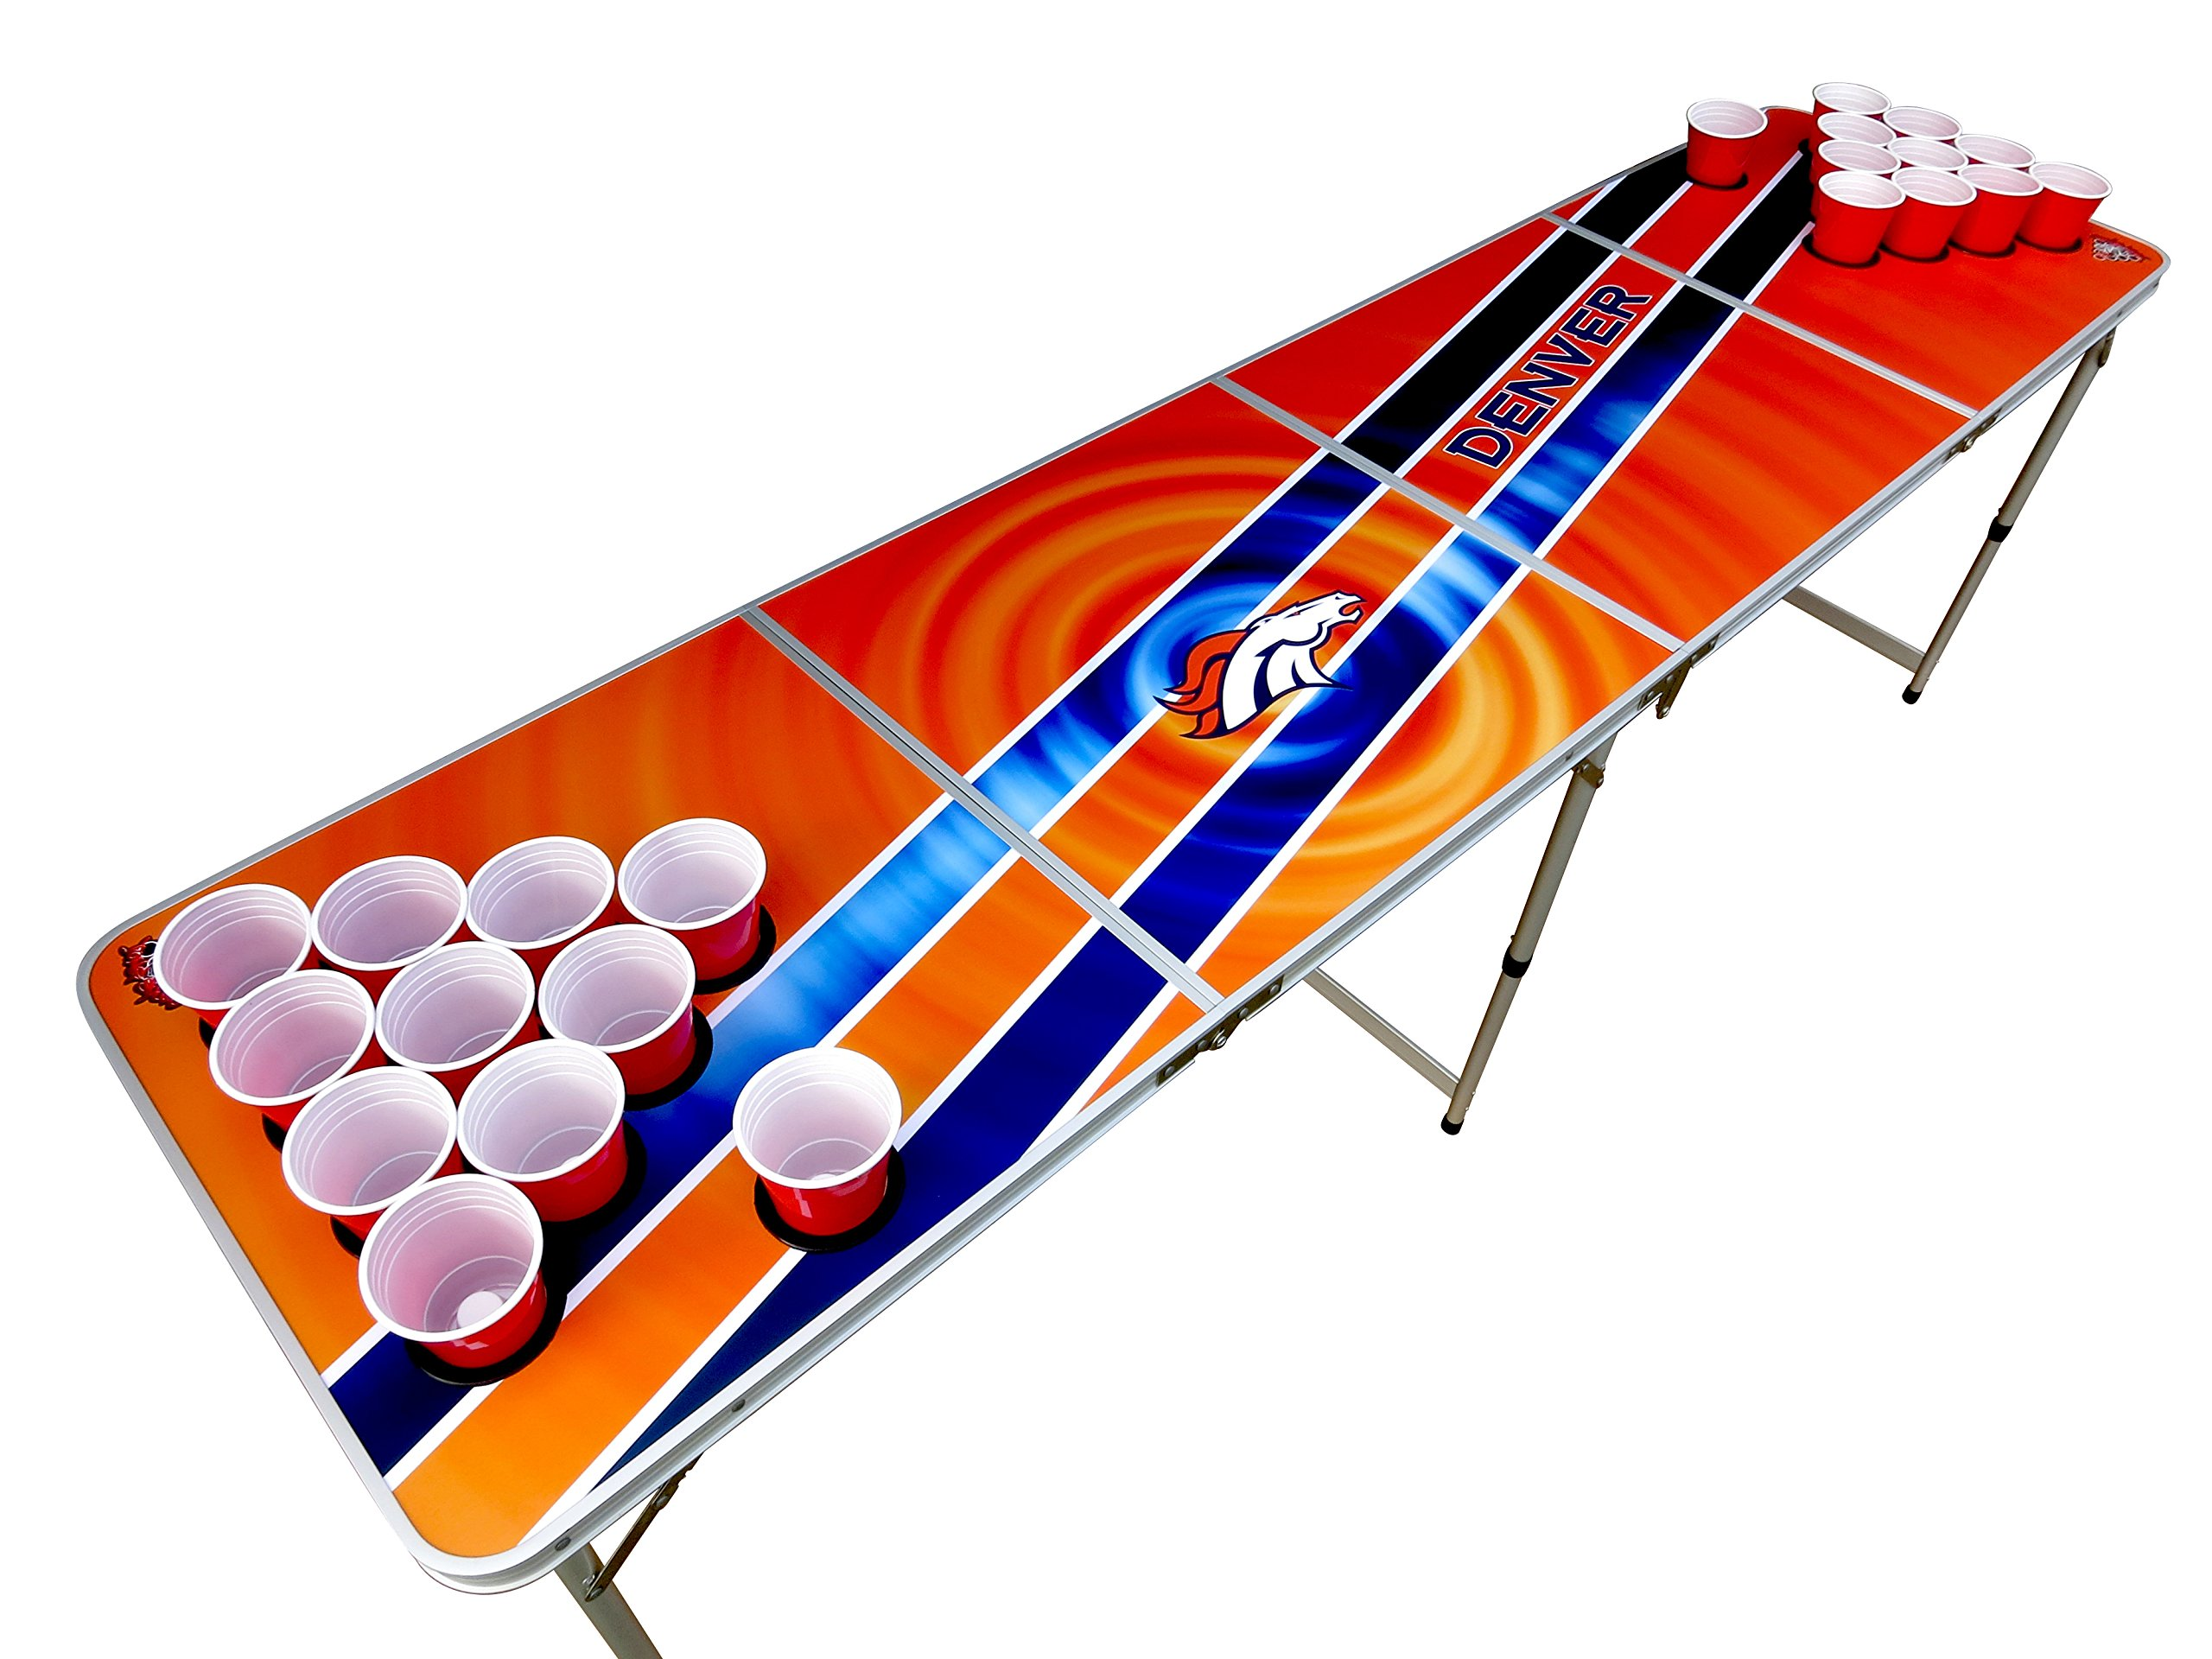 Denver Beer Pong Table with Holes, 2x8, Aluminum, Portable